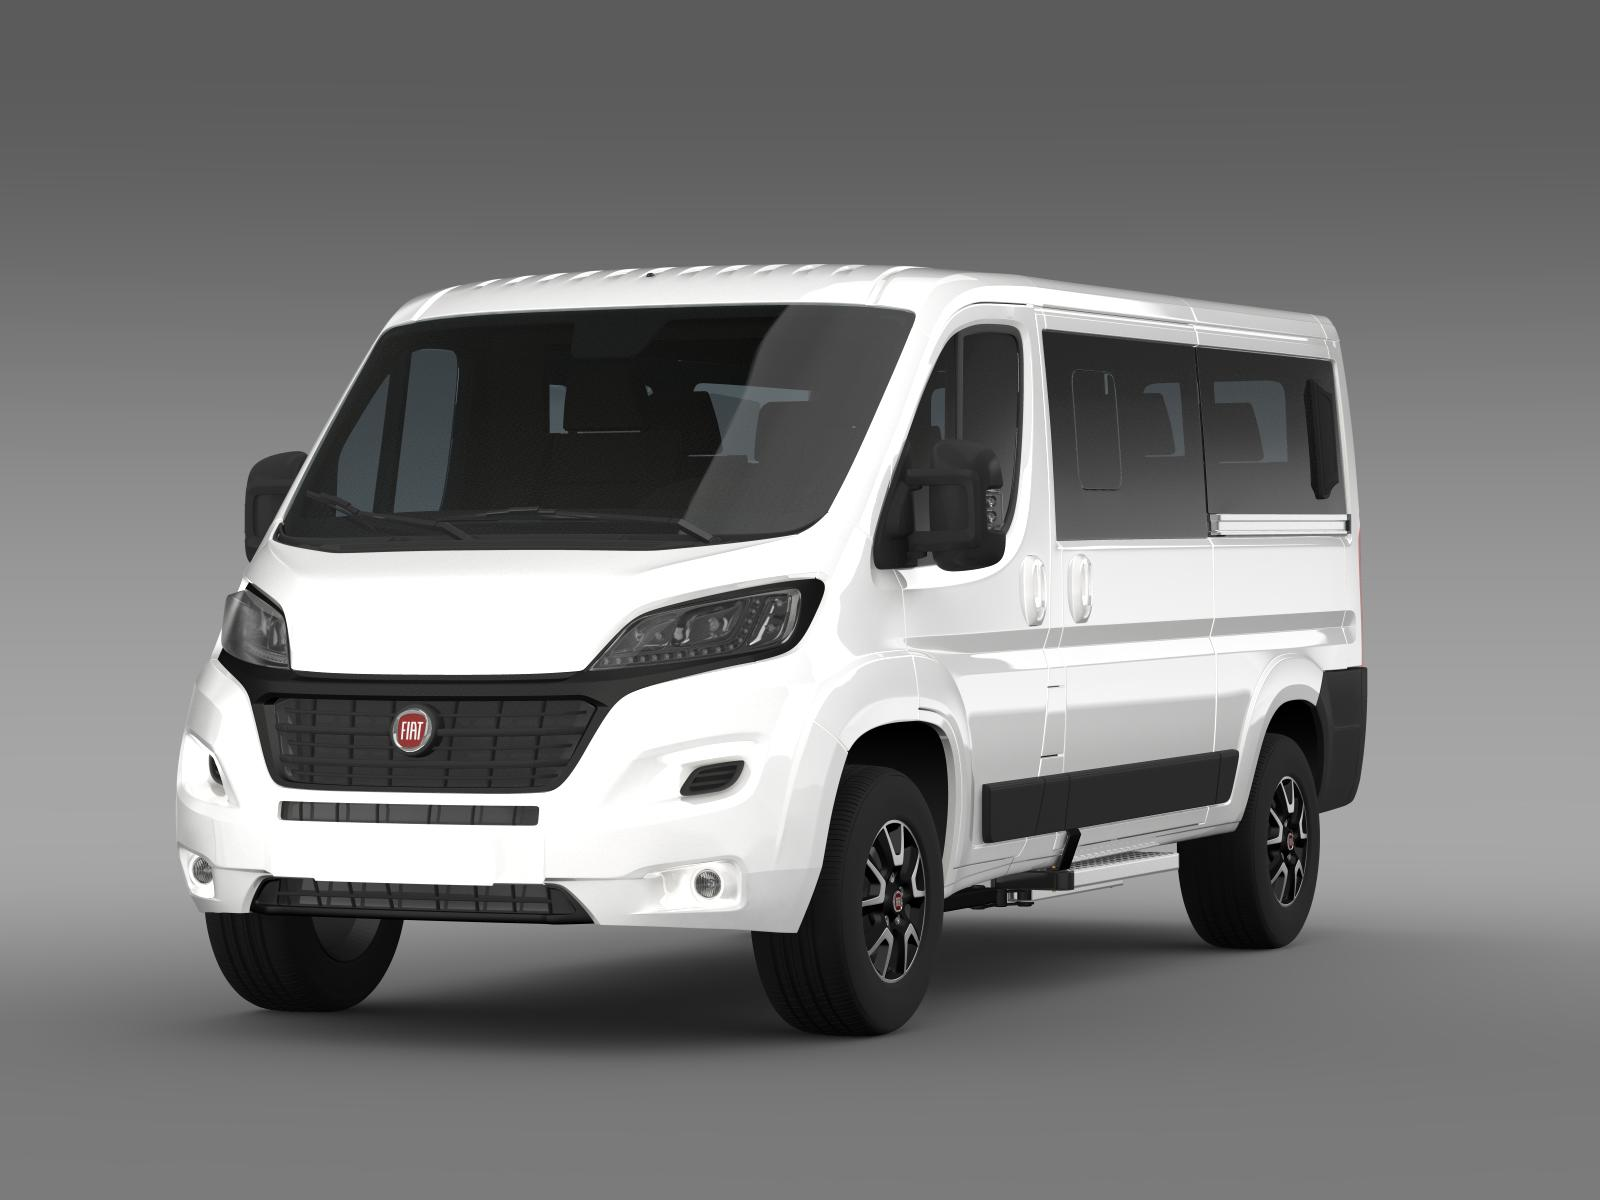 fiat ducato panorama l2h1 2015 3d model buy fiat ducato panorama l2h1 2015 3d model flatpyramid. Black Bedroom Furniture Sets. Home Design Ideas